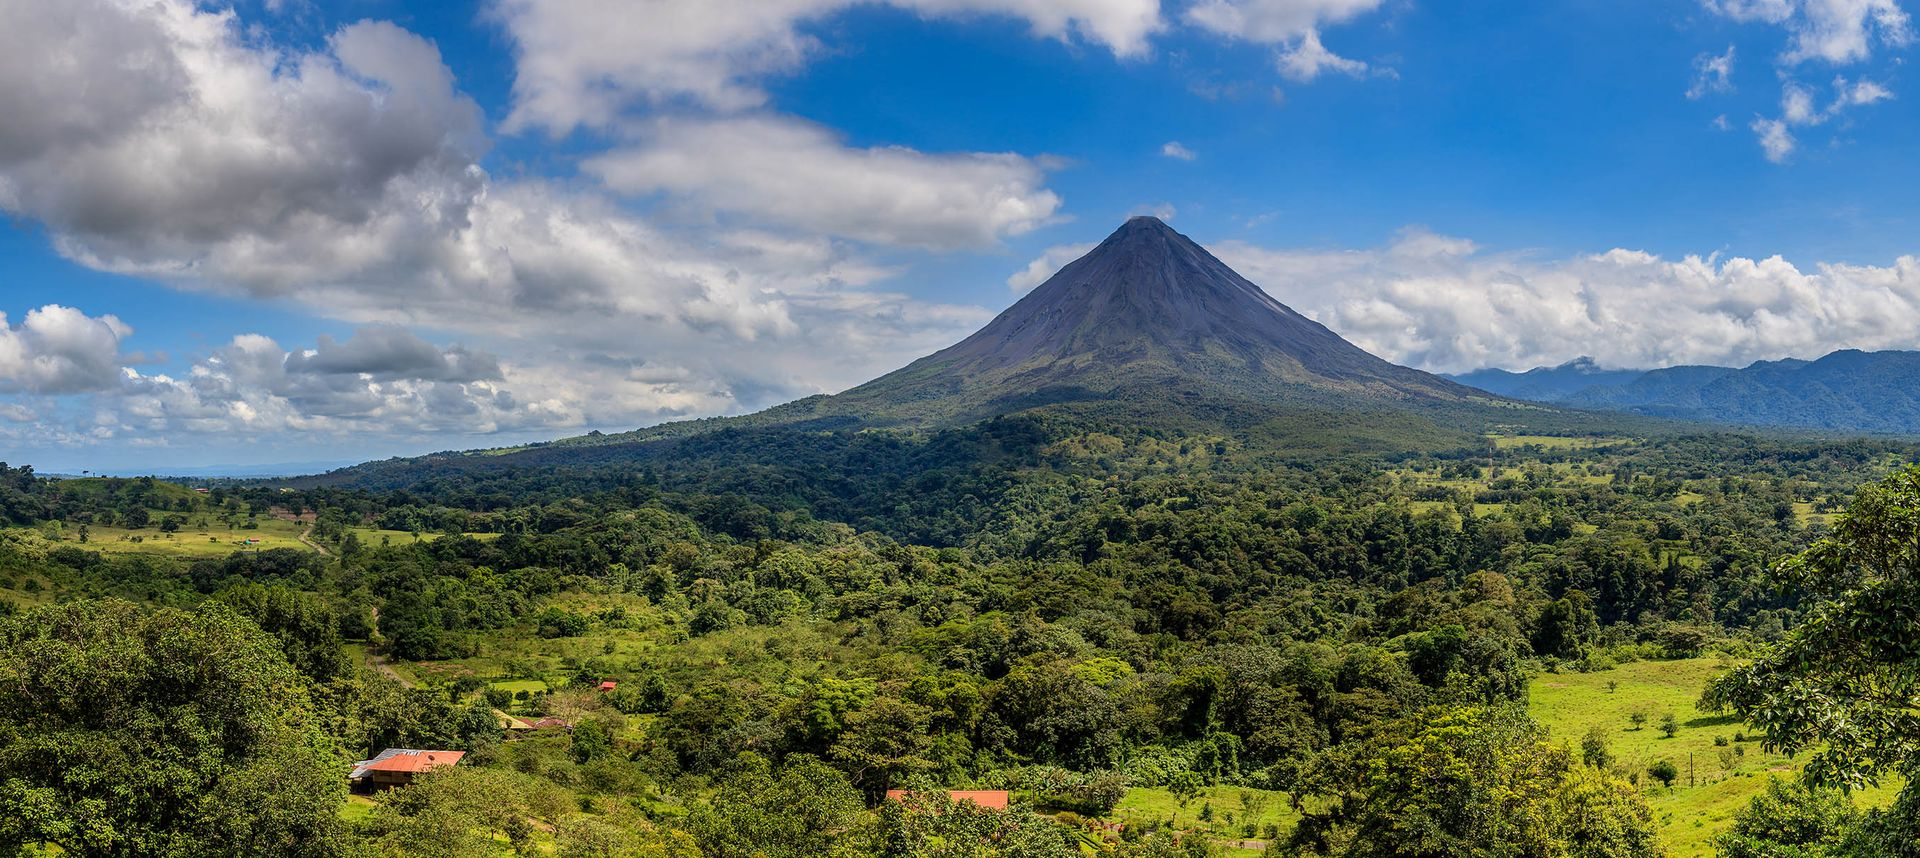 Find your Sanctuary in Costa Rica